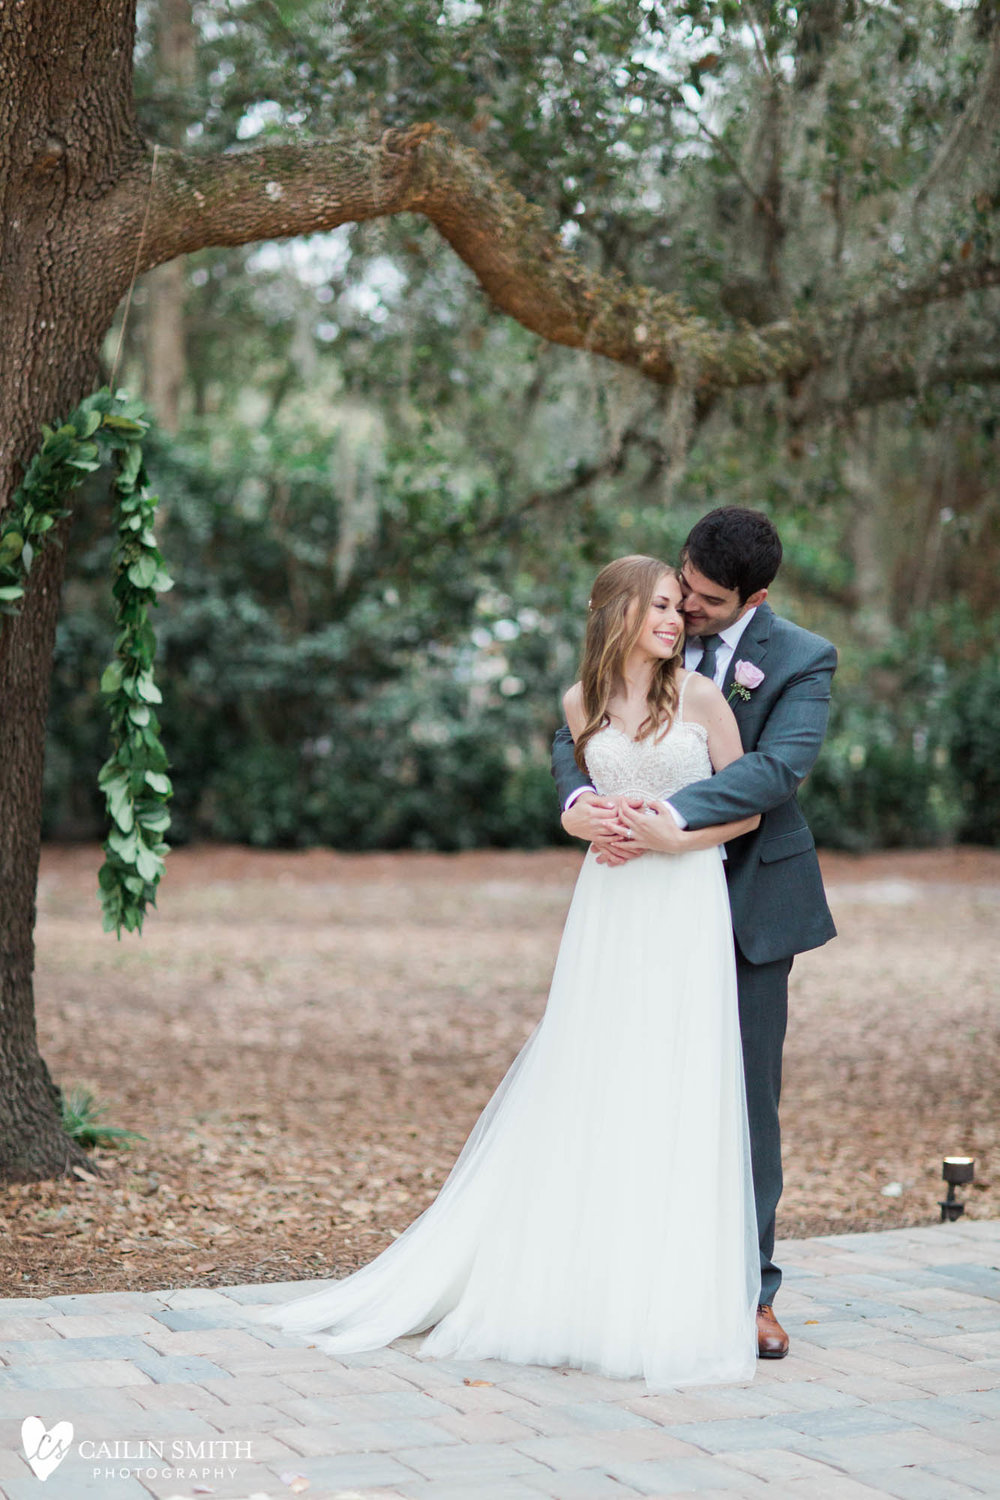 Sylvia_Anthony_Bowing_Oaks_Plantation_Wedding_Photography_0079.jpg